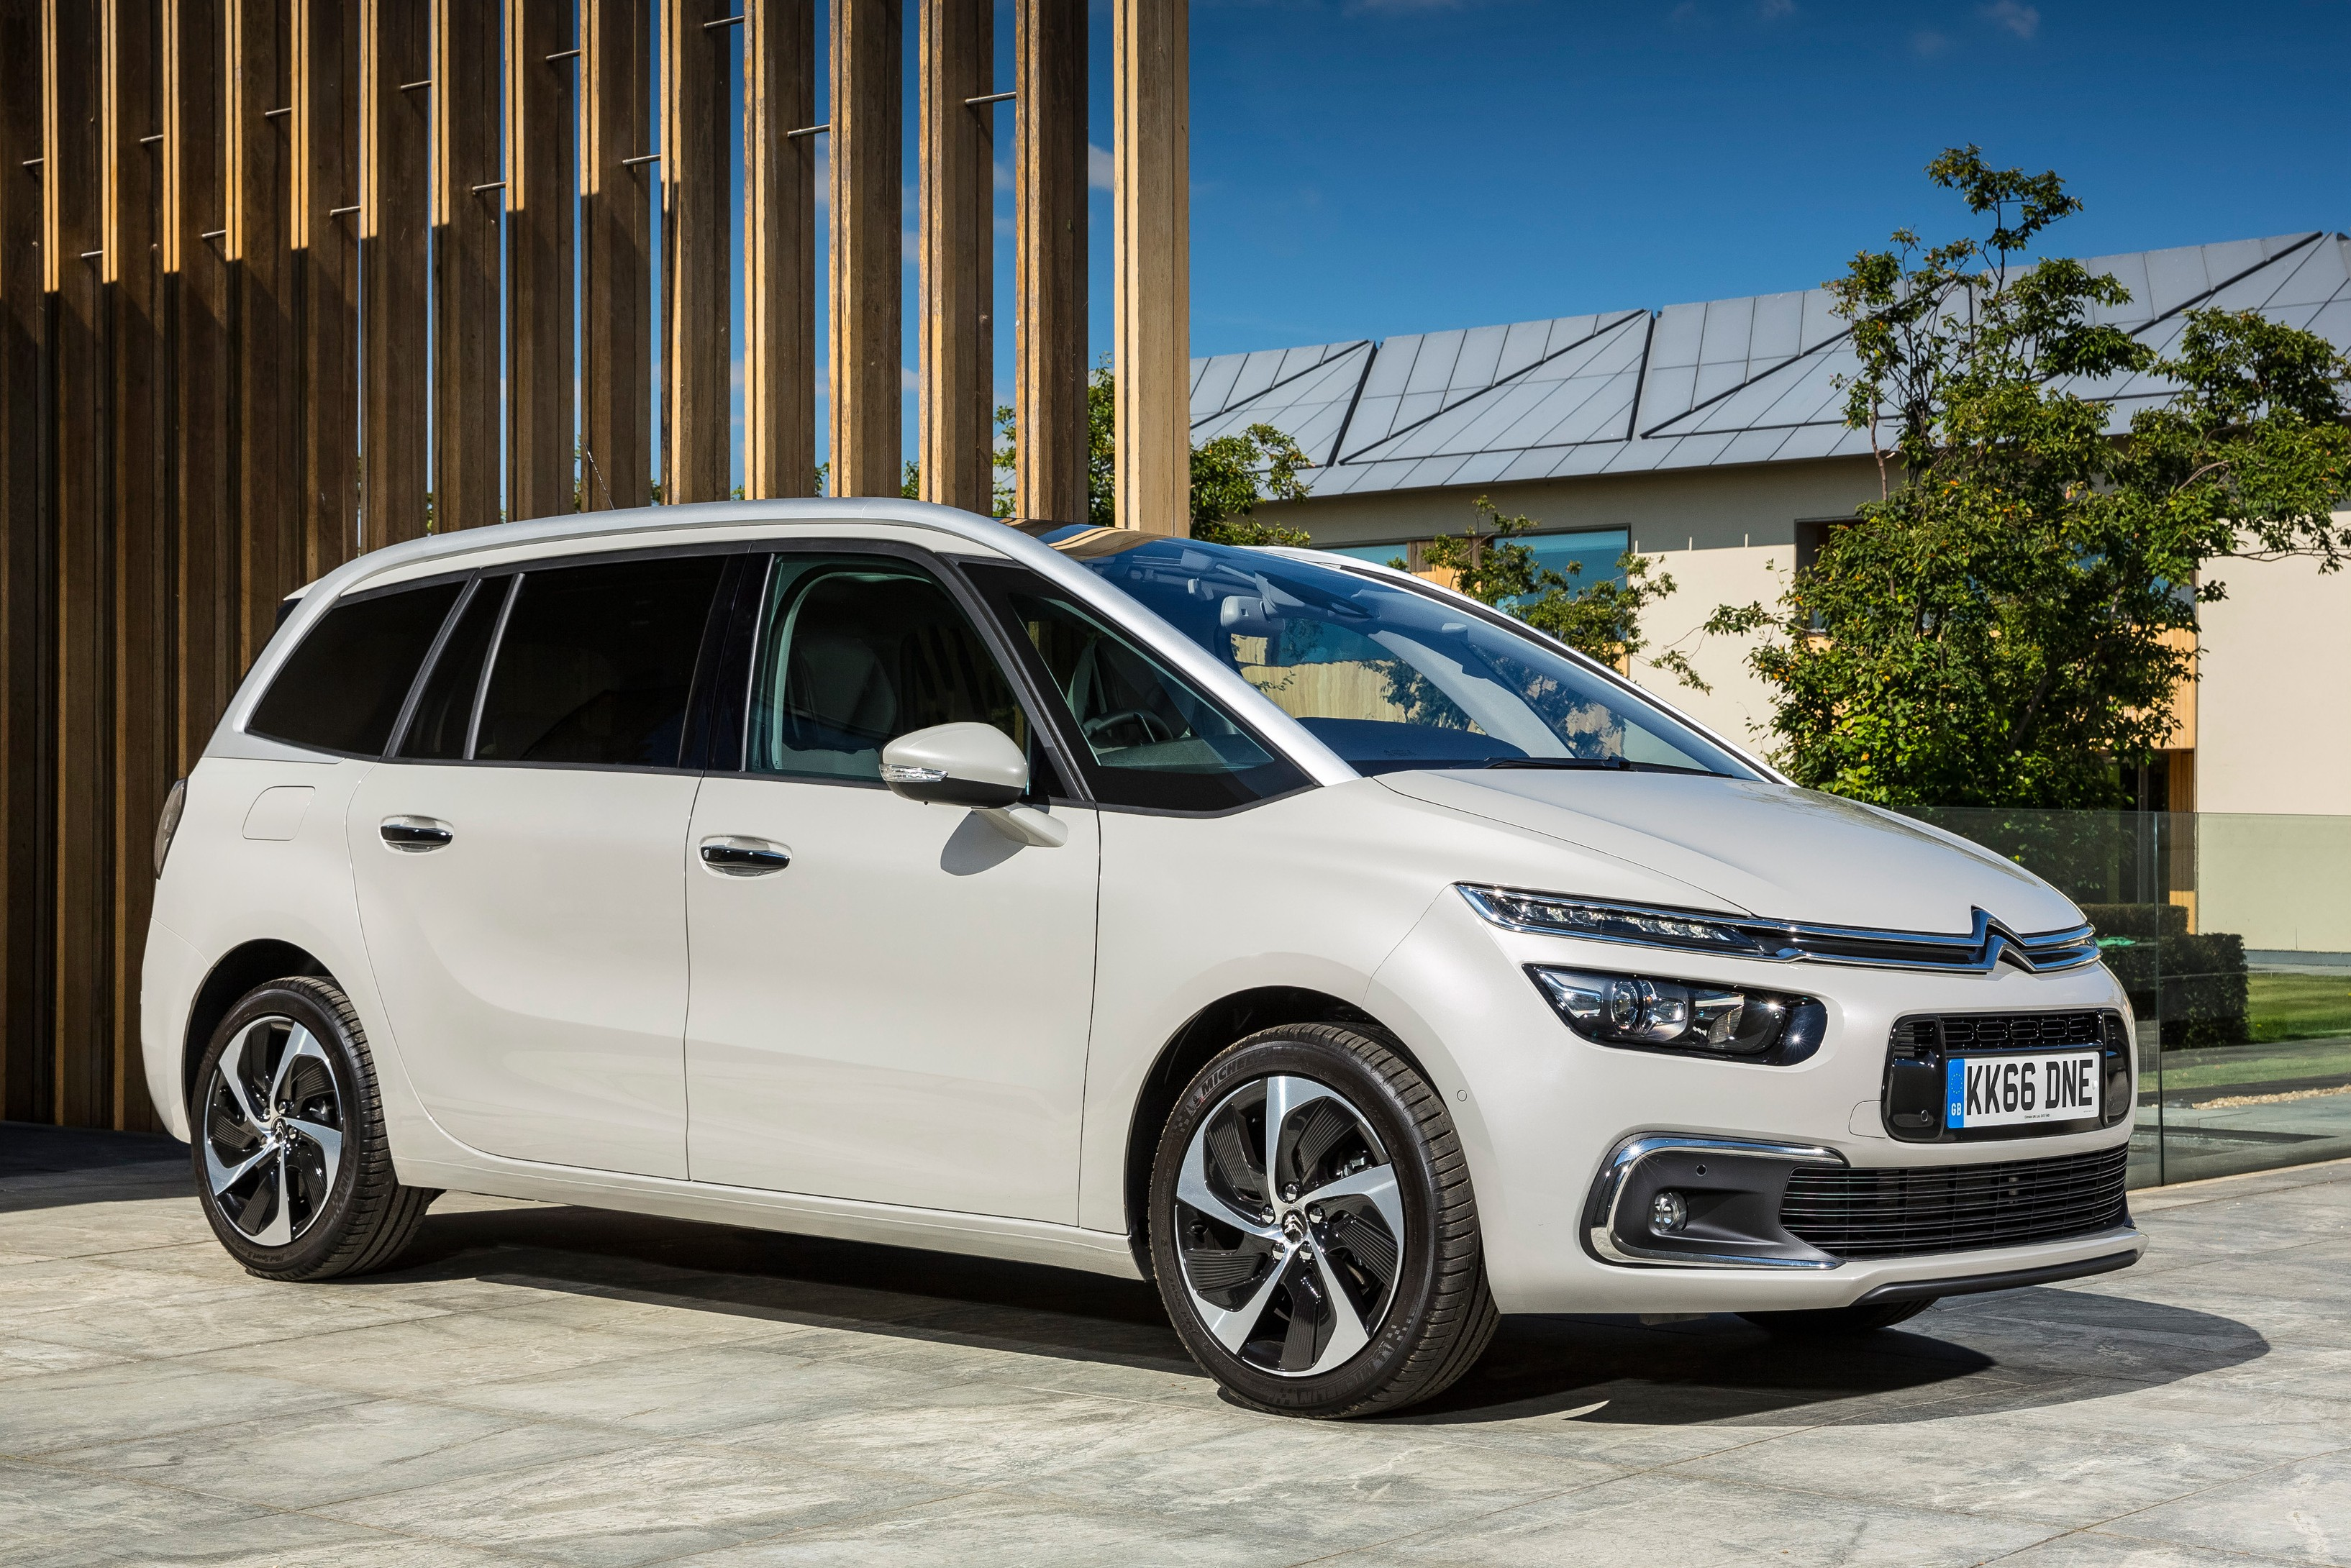 Citroen C4 Picasso mod specifications